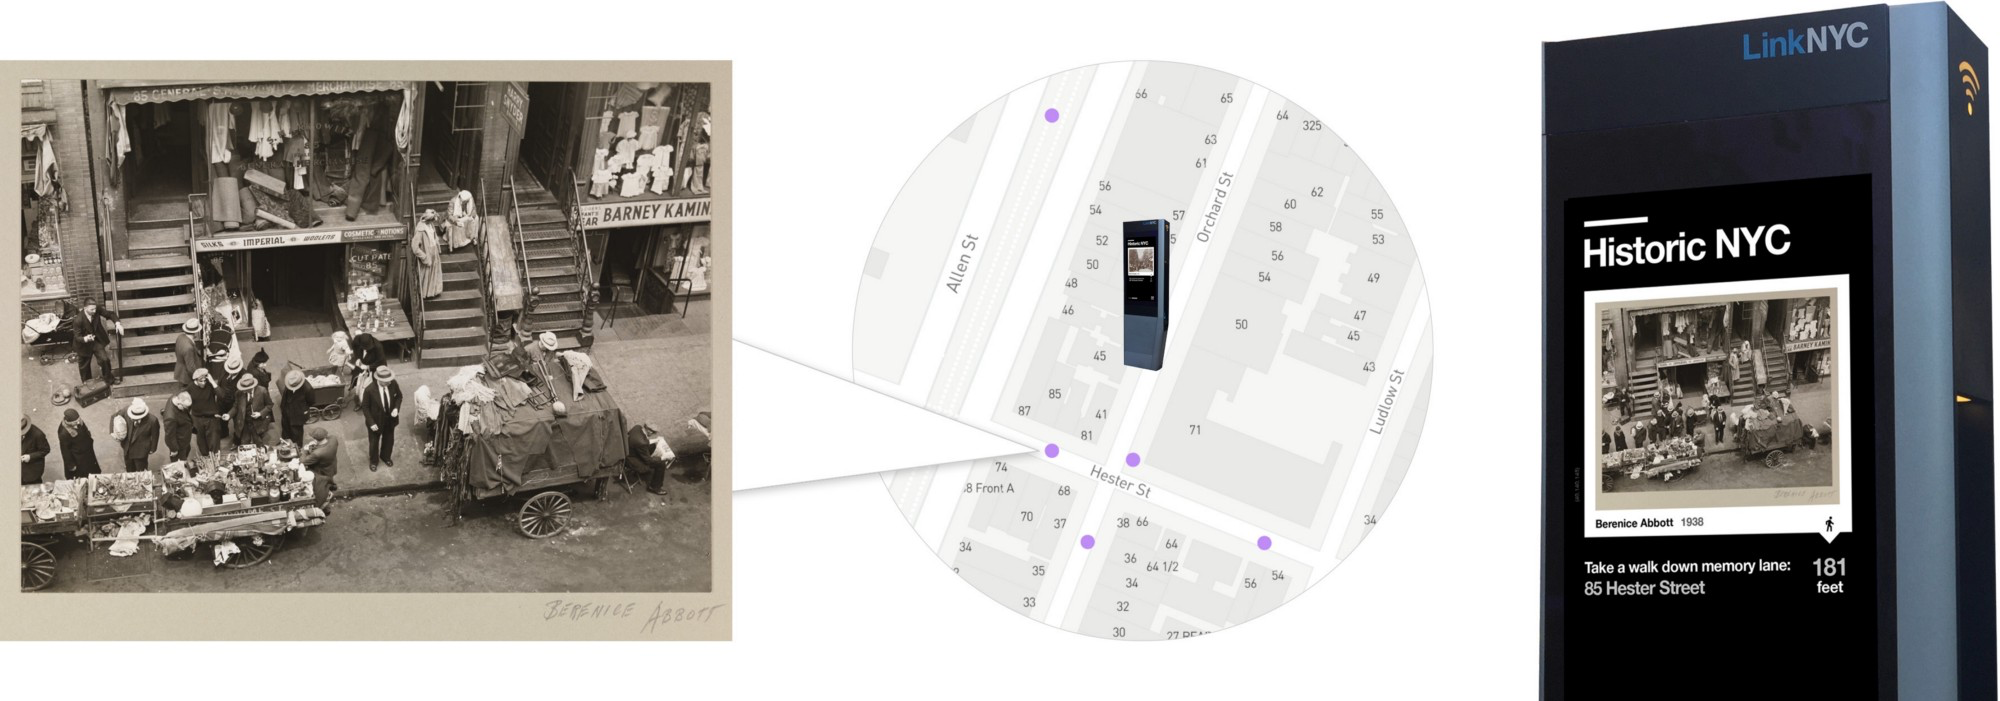 Using this collection data, we are able to map historical images (like this picture of    85 Hester Street    sourced from Museum of the City of New York) and then send them to nearby    LinkNYC kiosks    in proximity to the location of capture.